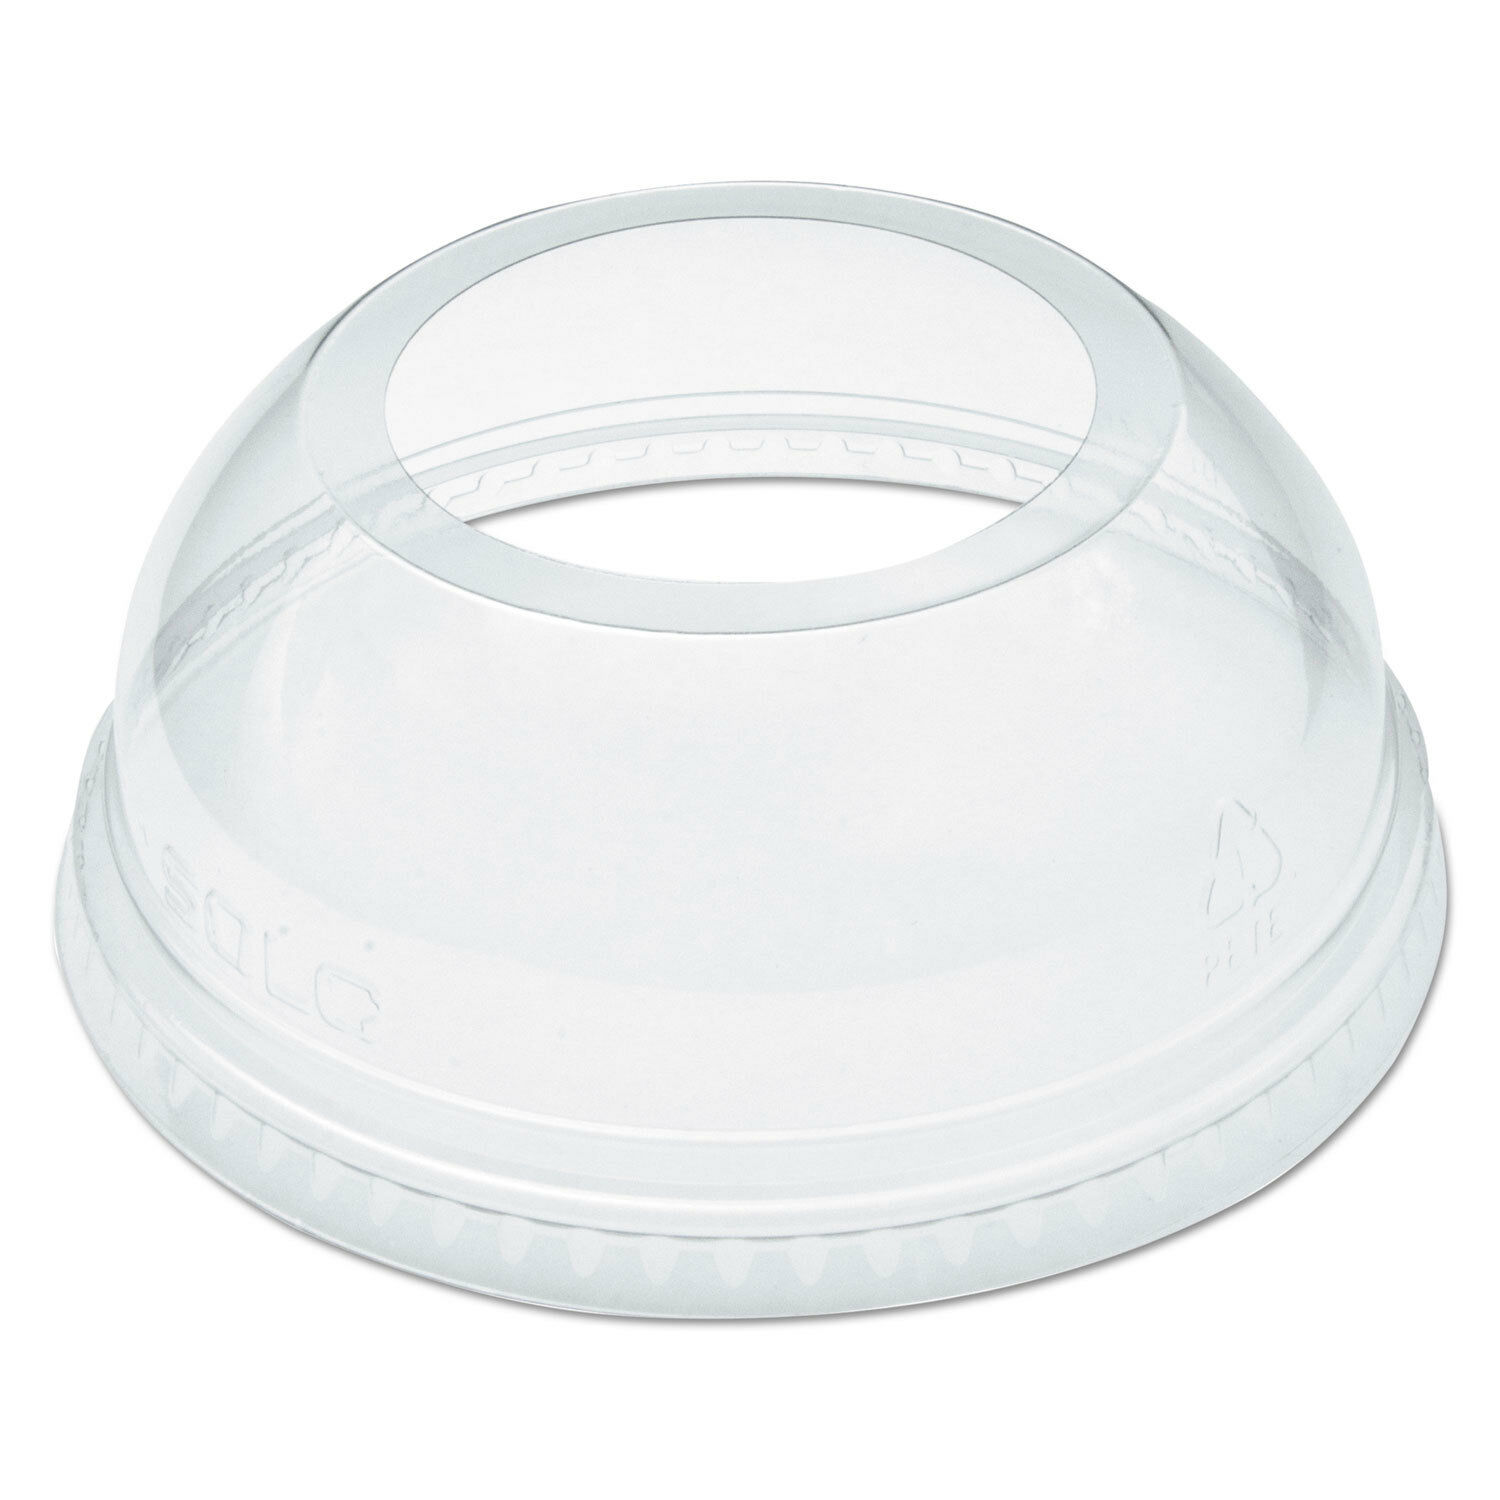 Open-Top Dome Lid for 16-24 oz Plastic Cups, Clear, 1.9 Dia Hole, 1000 Carton